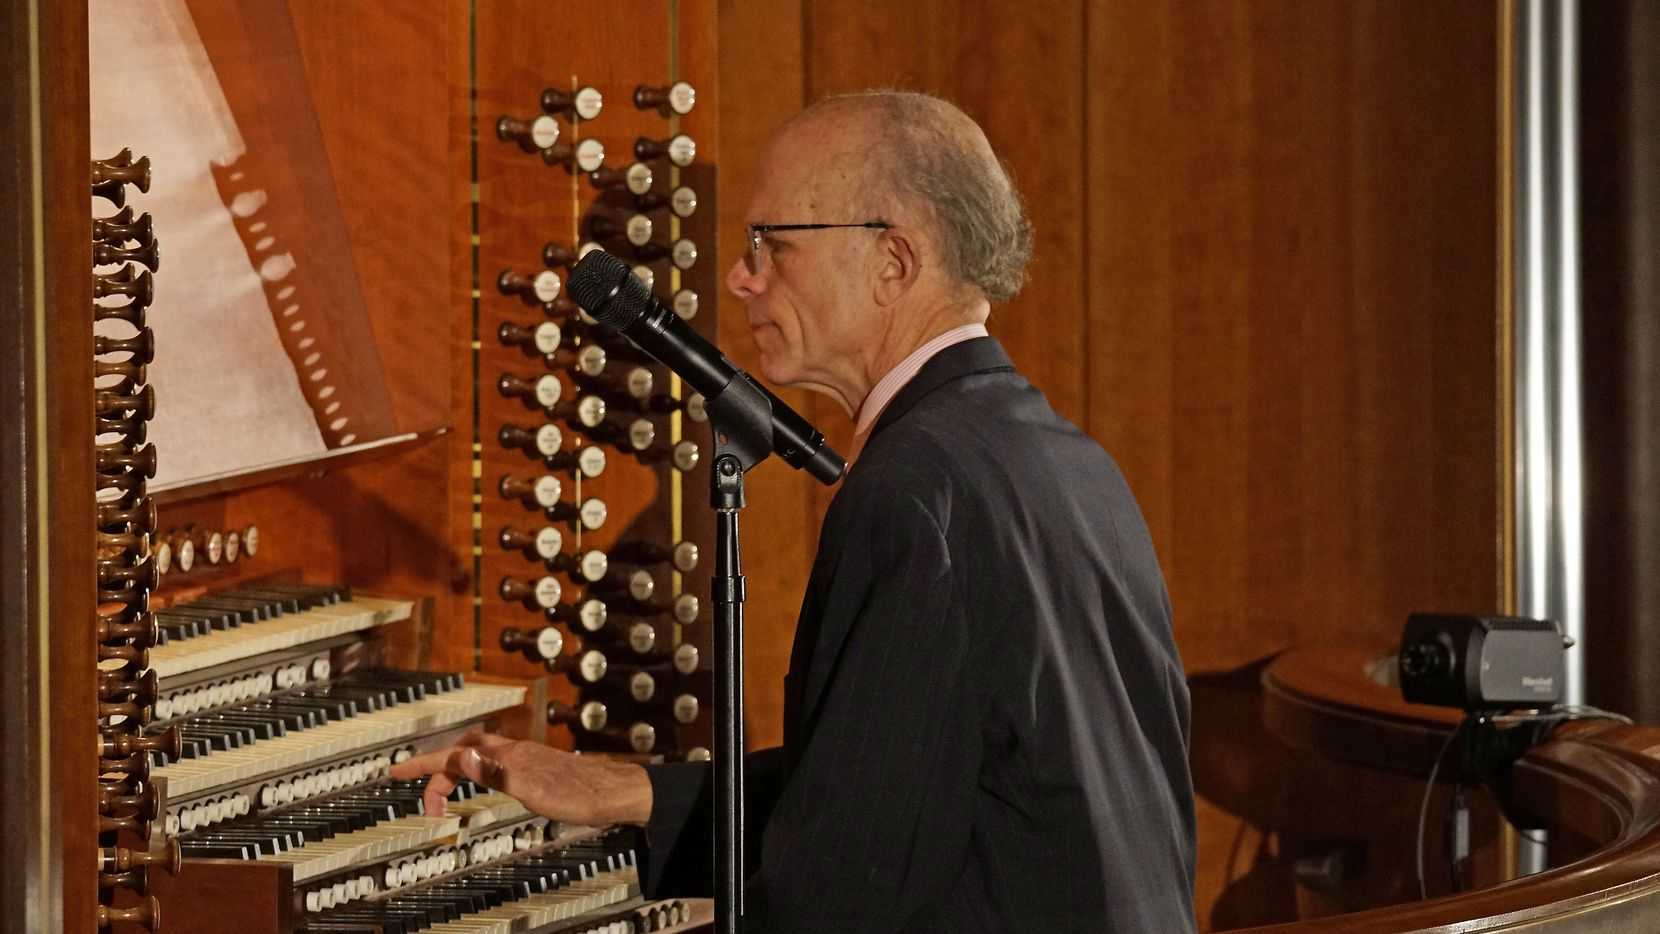 Organist Todd Wilson performs at the Meyerson Symphony Center in Dallas, Texas on Nov. 22, 2020.